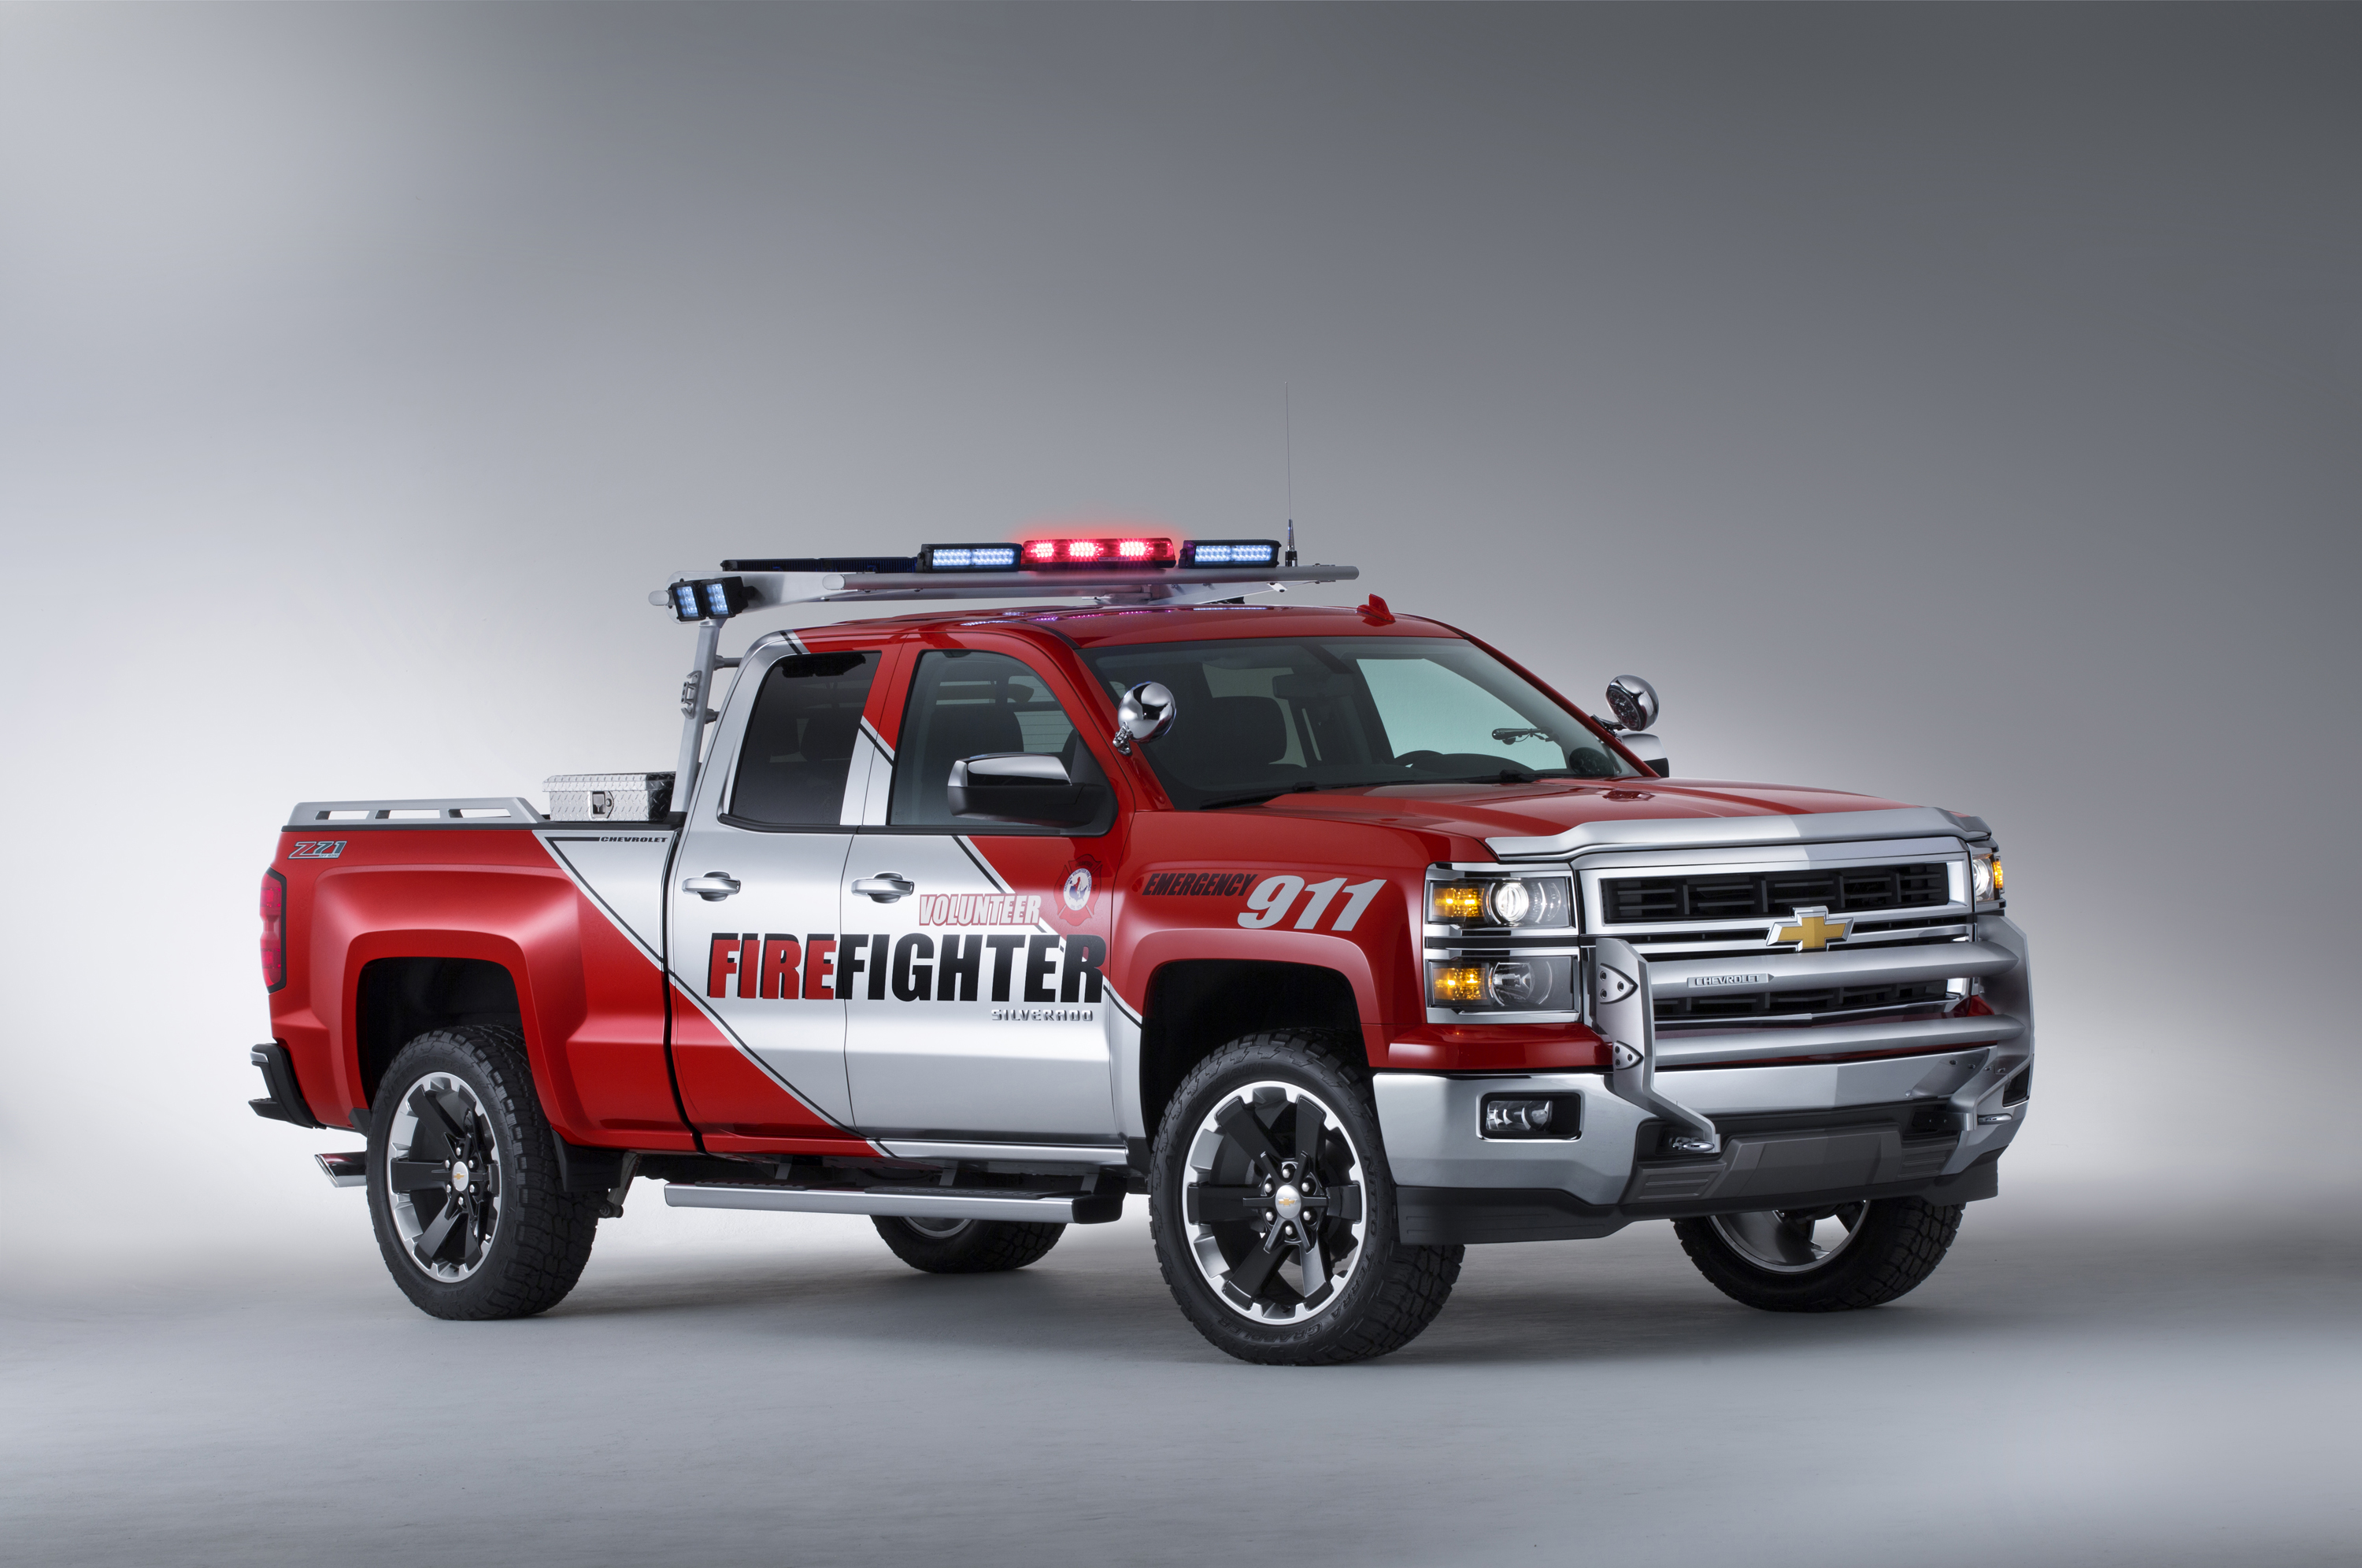 Silverado volunteer firefighter concept can take the heat